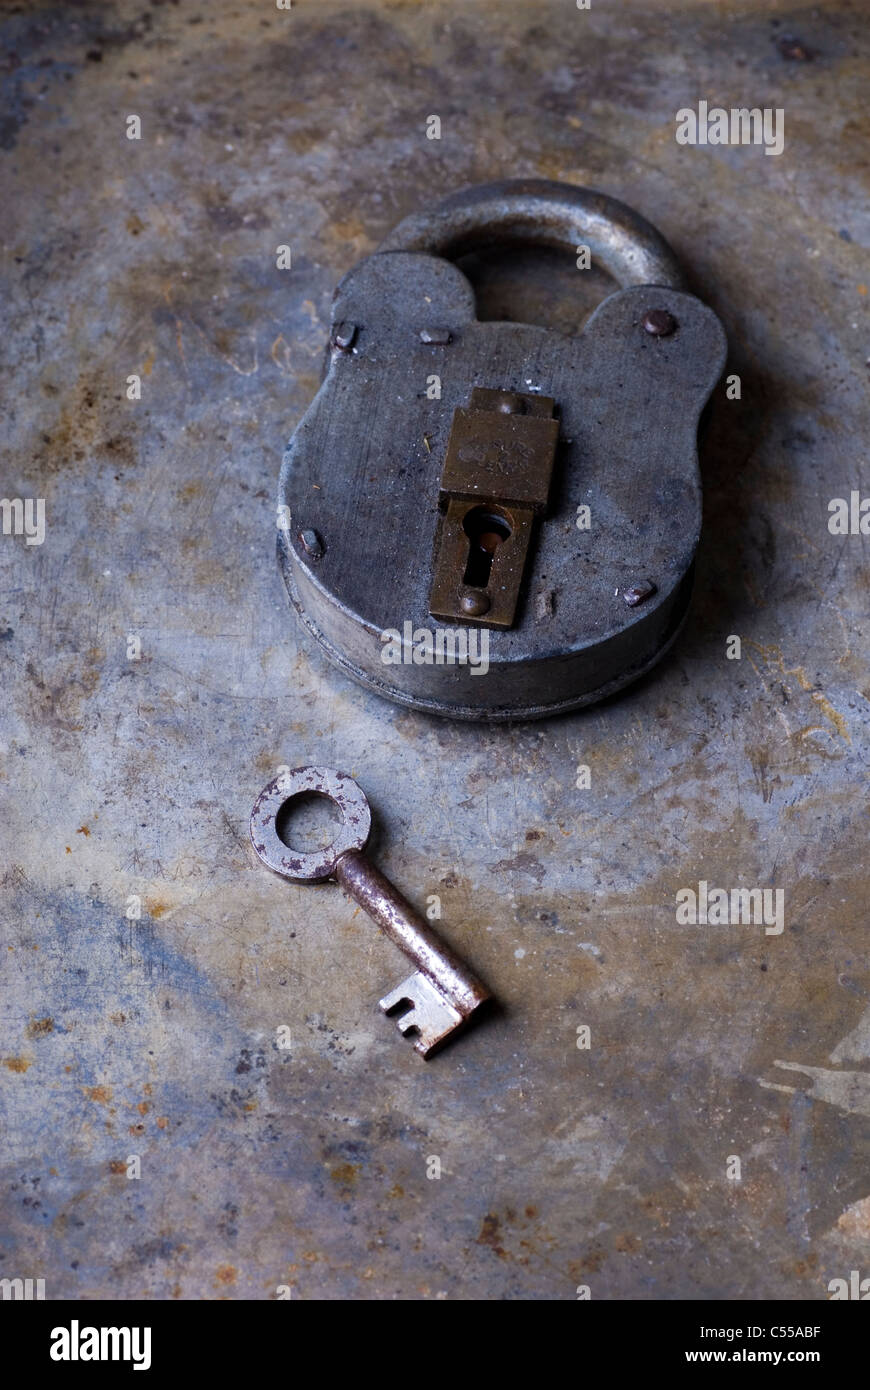 Old padlock with a key - Stock Image